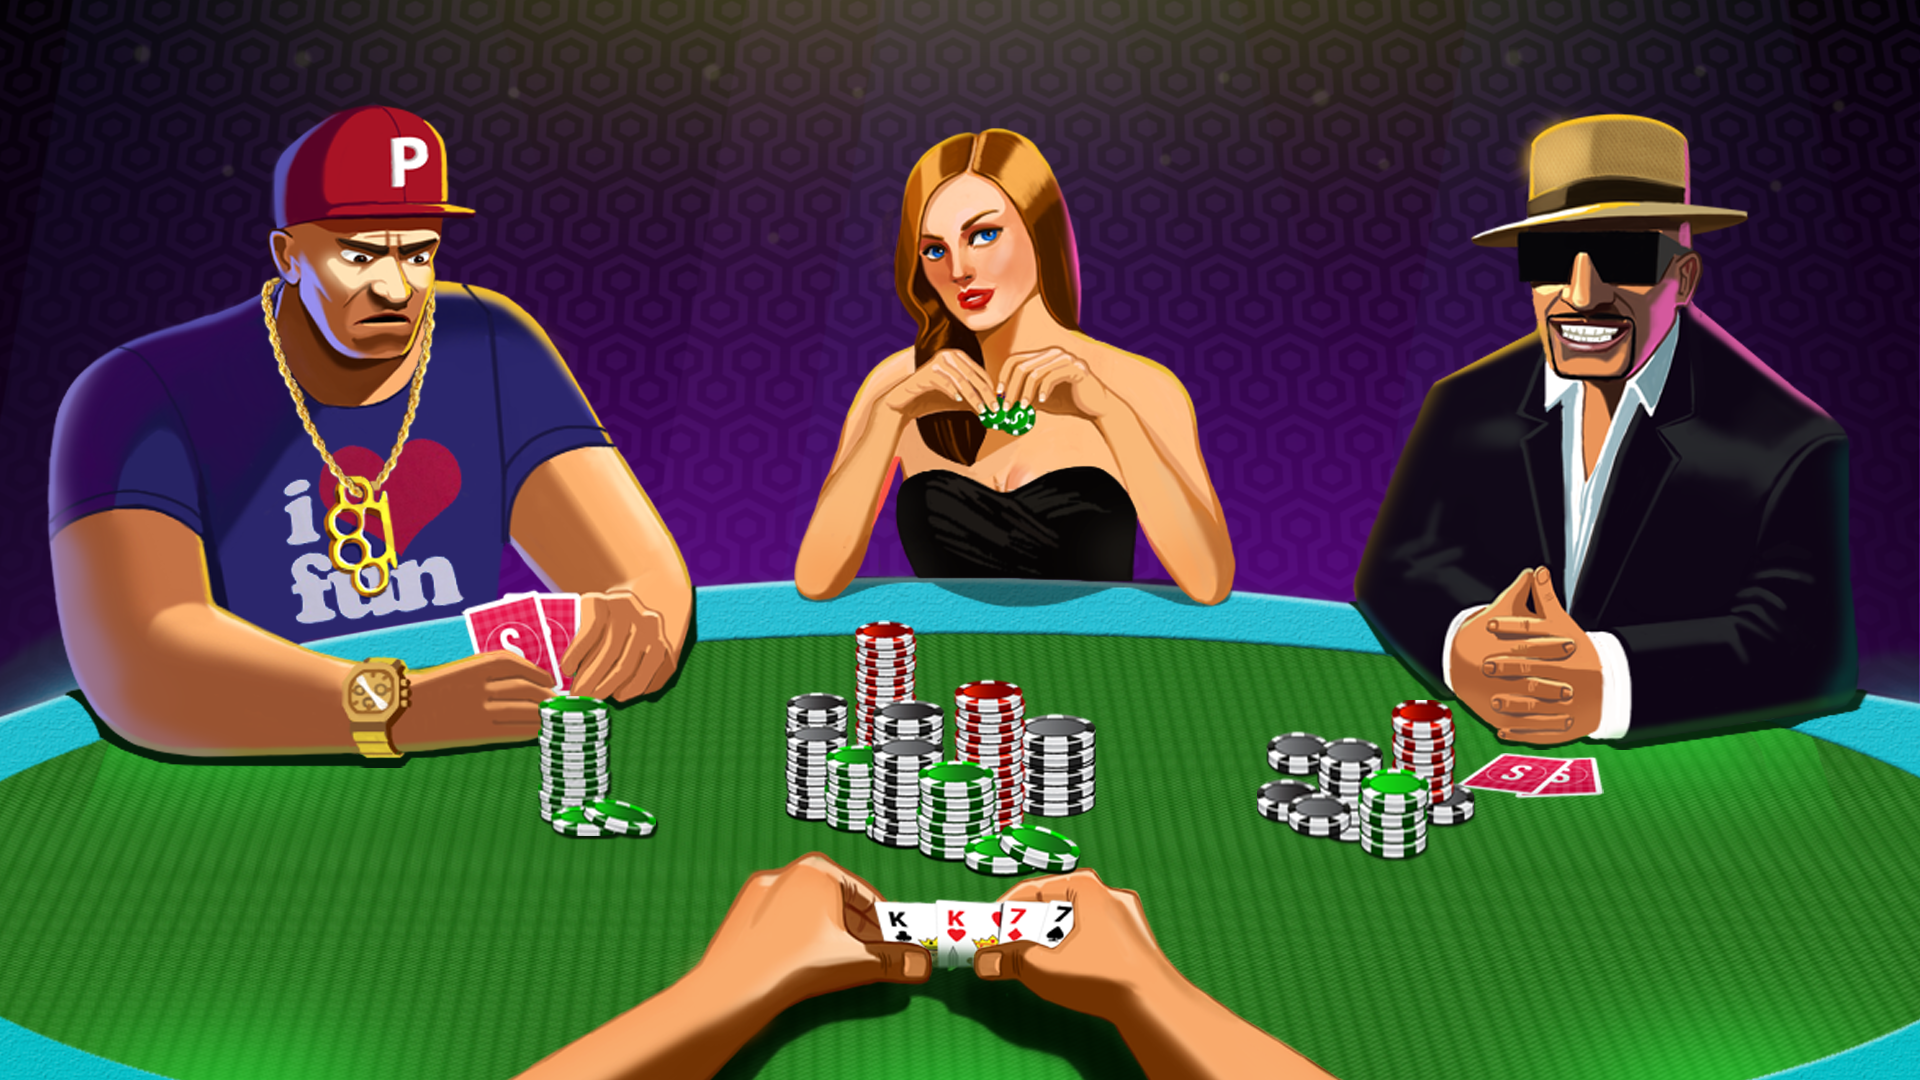 Poker bluffing is one of the most important skills you should know